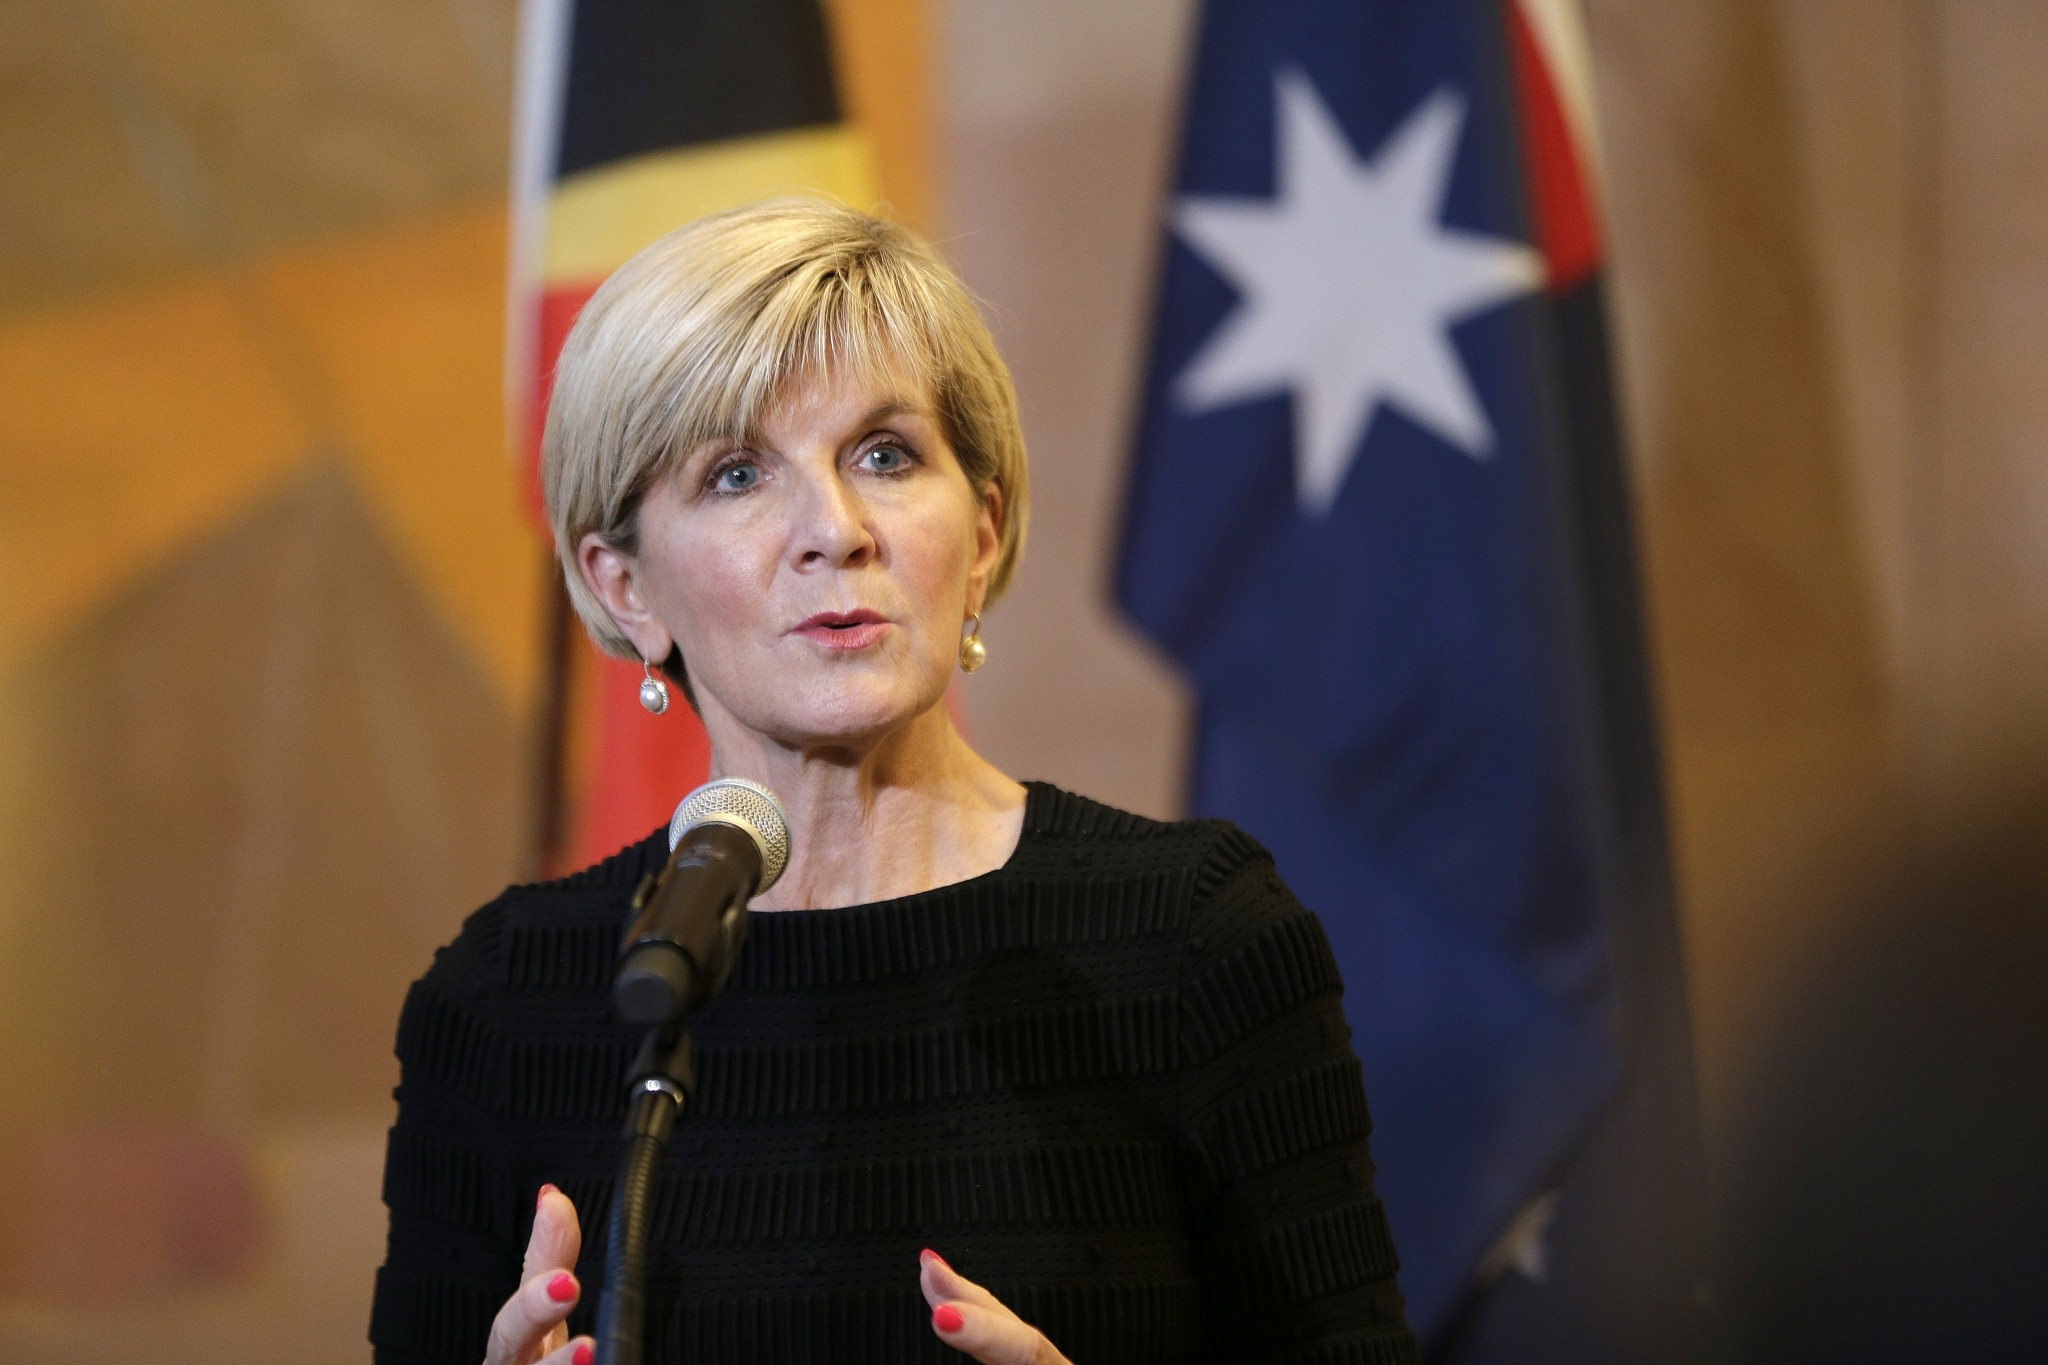 Australia stops direct aid to Palestinians, fearing it funds violence